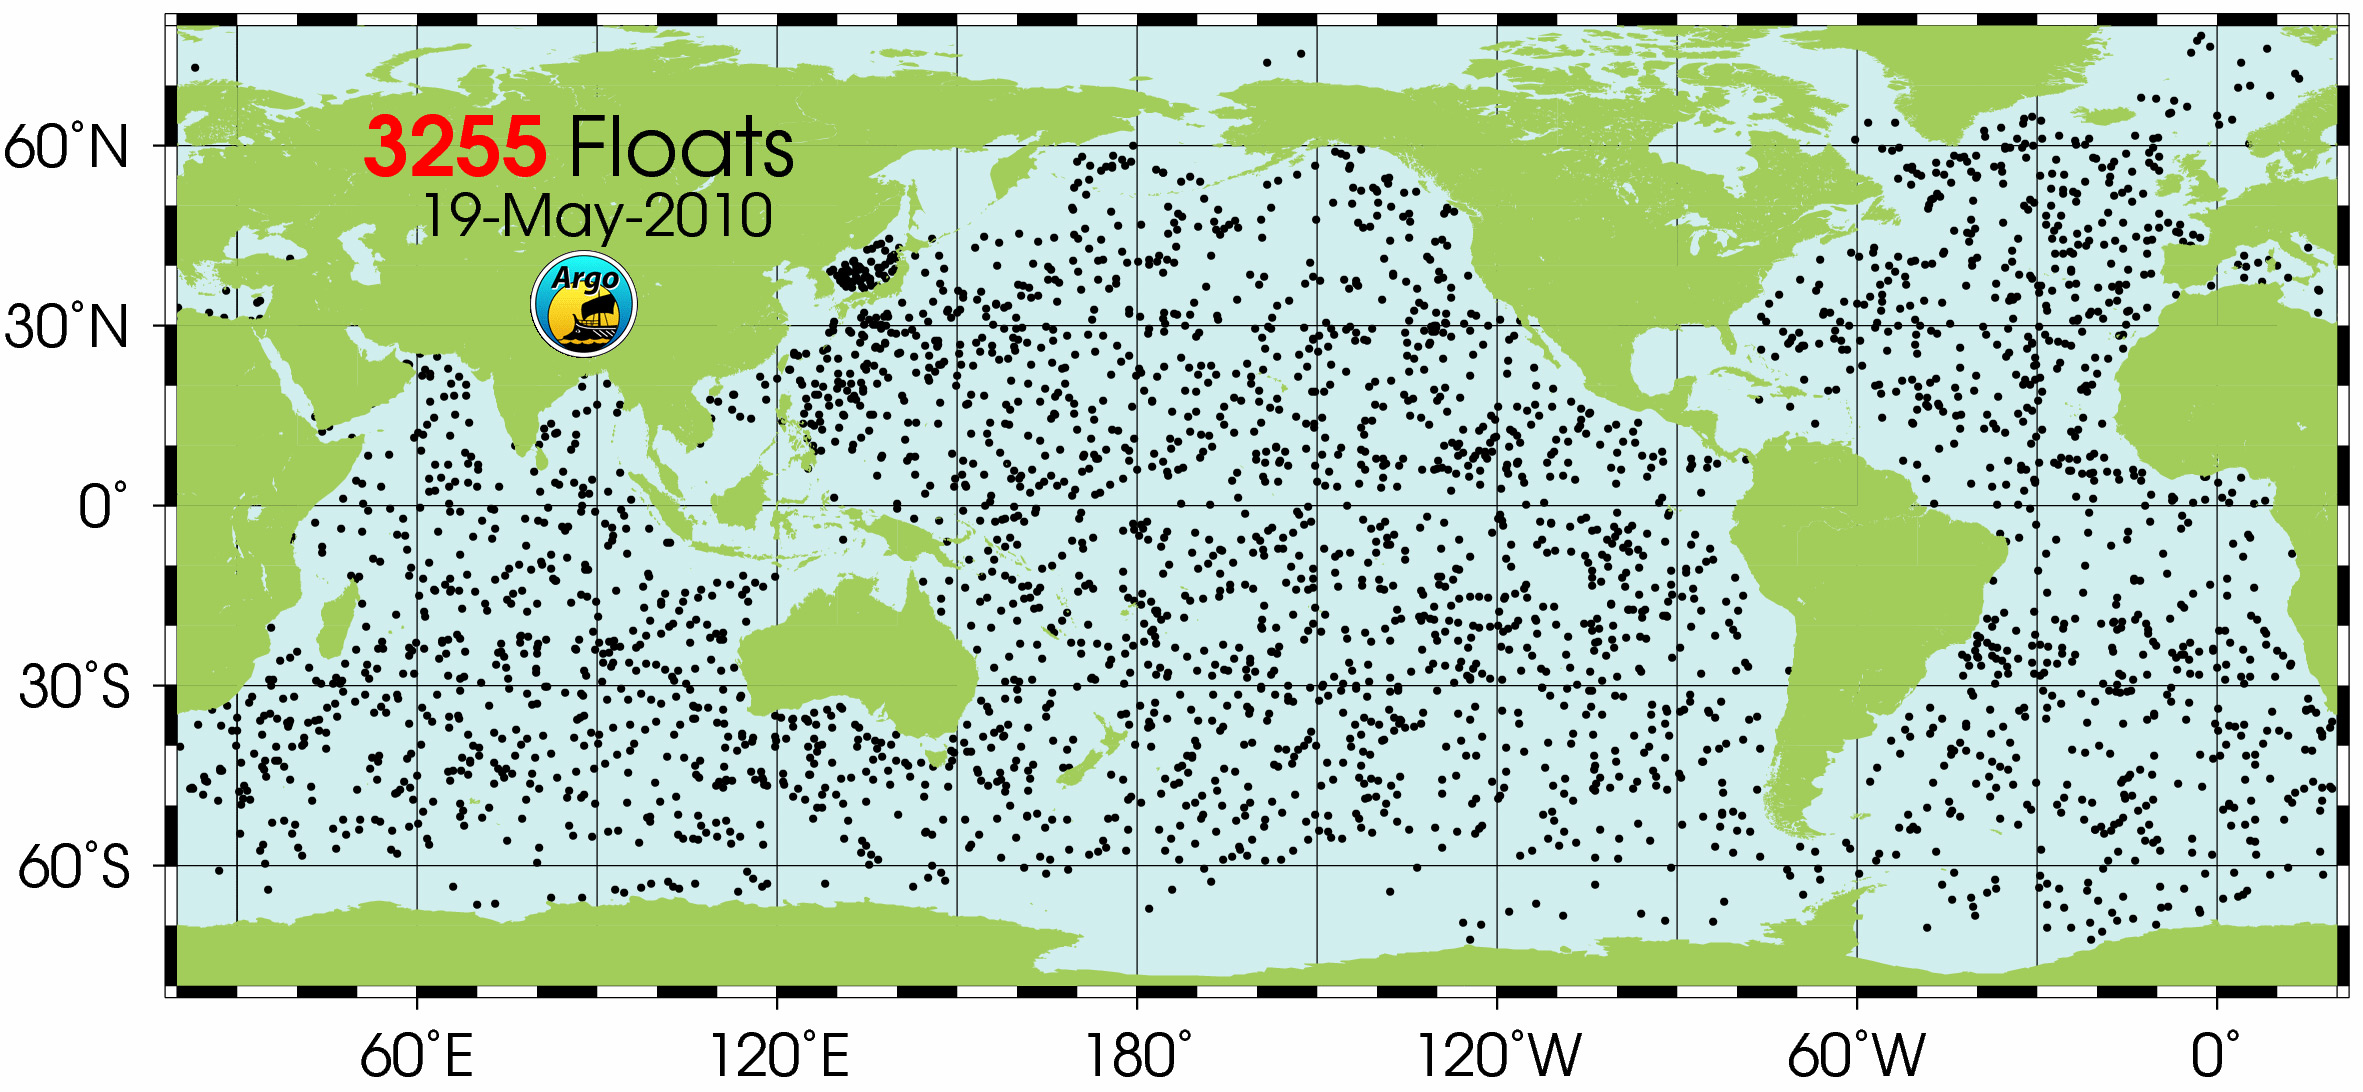 Map showing 3,200 free-floating Argo floats, instruments used to measure ocean temperature - International Argo Project